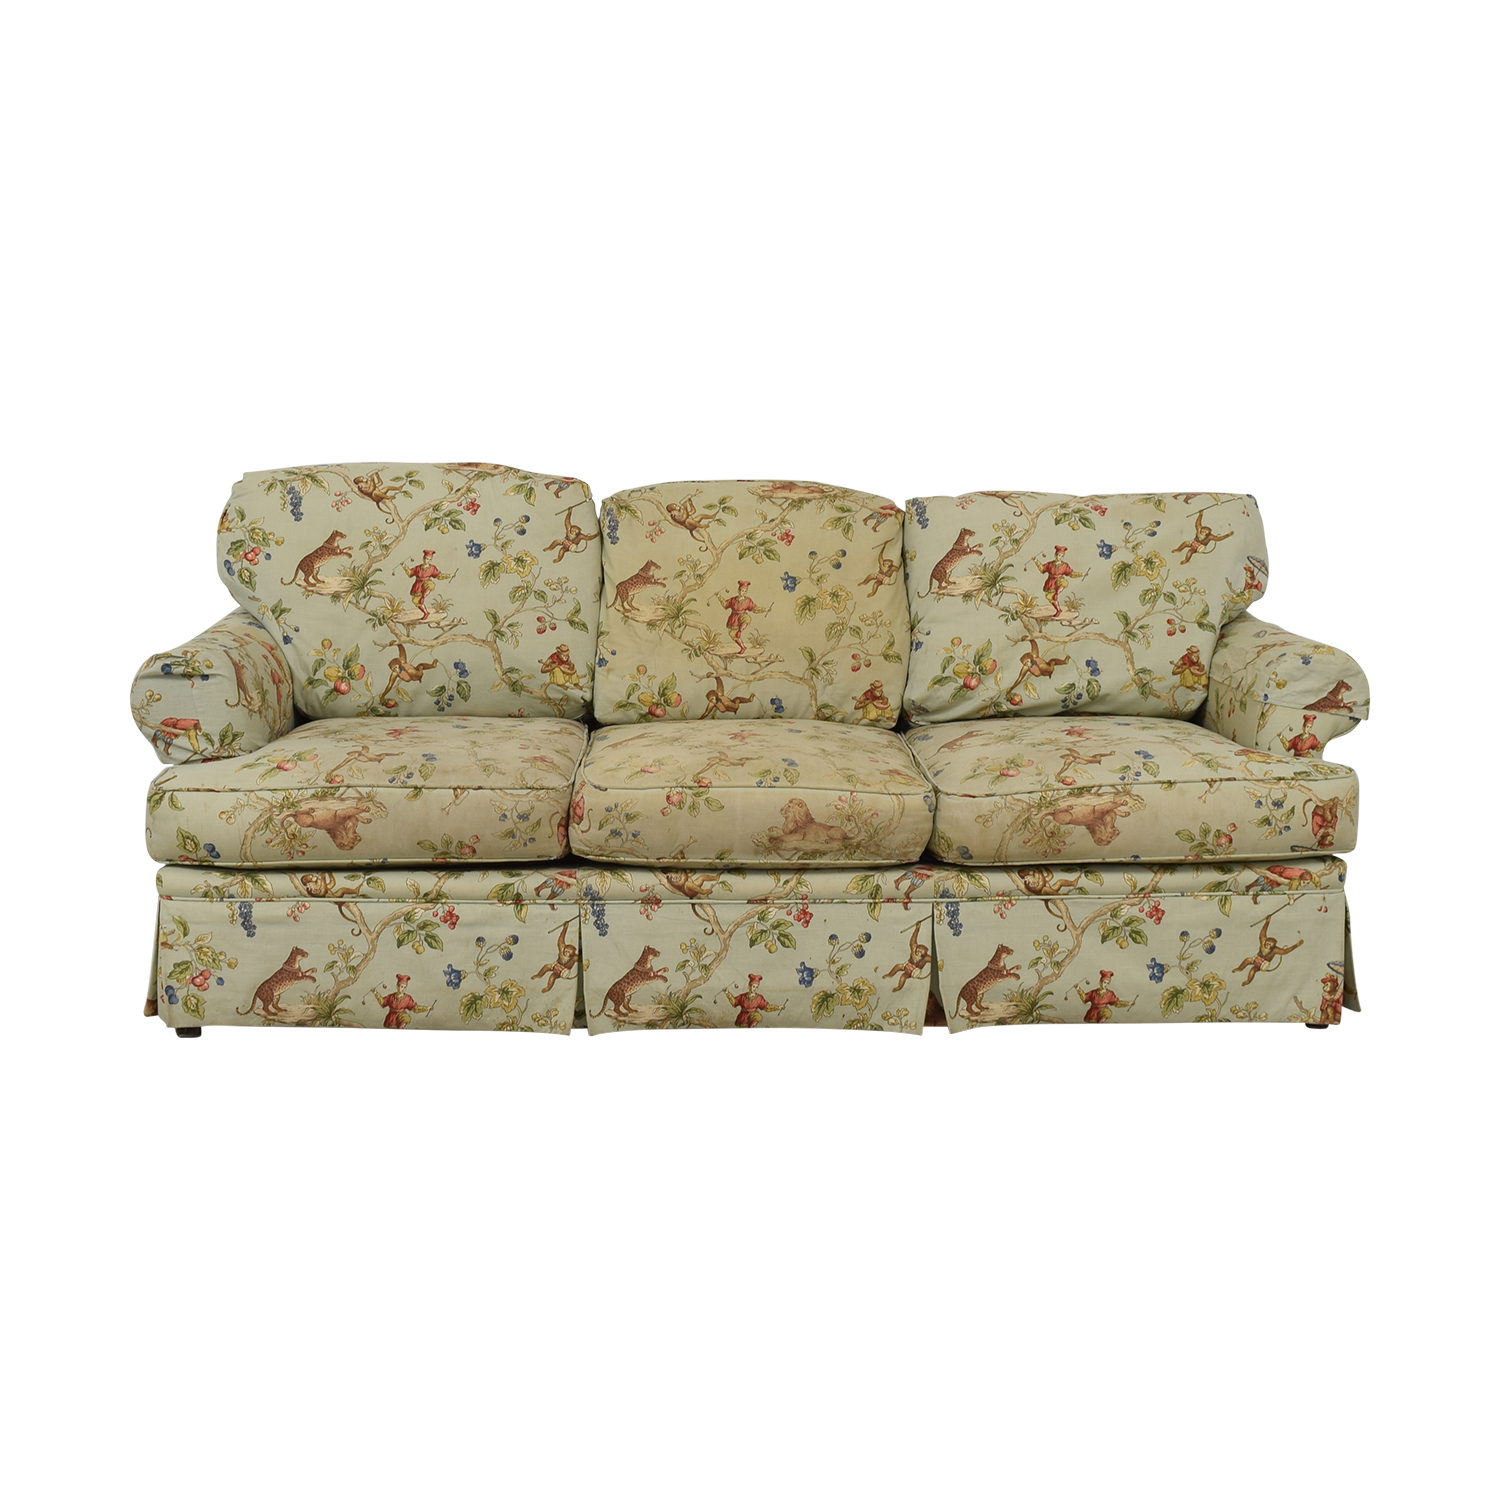 Harden Scalamandre Upholstered Three-Cushion Sofa Harden